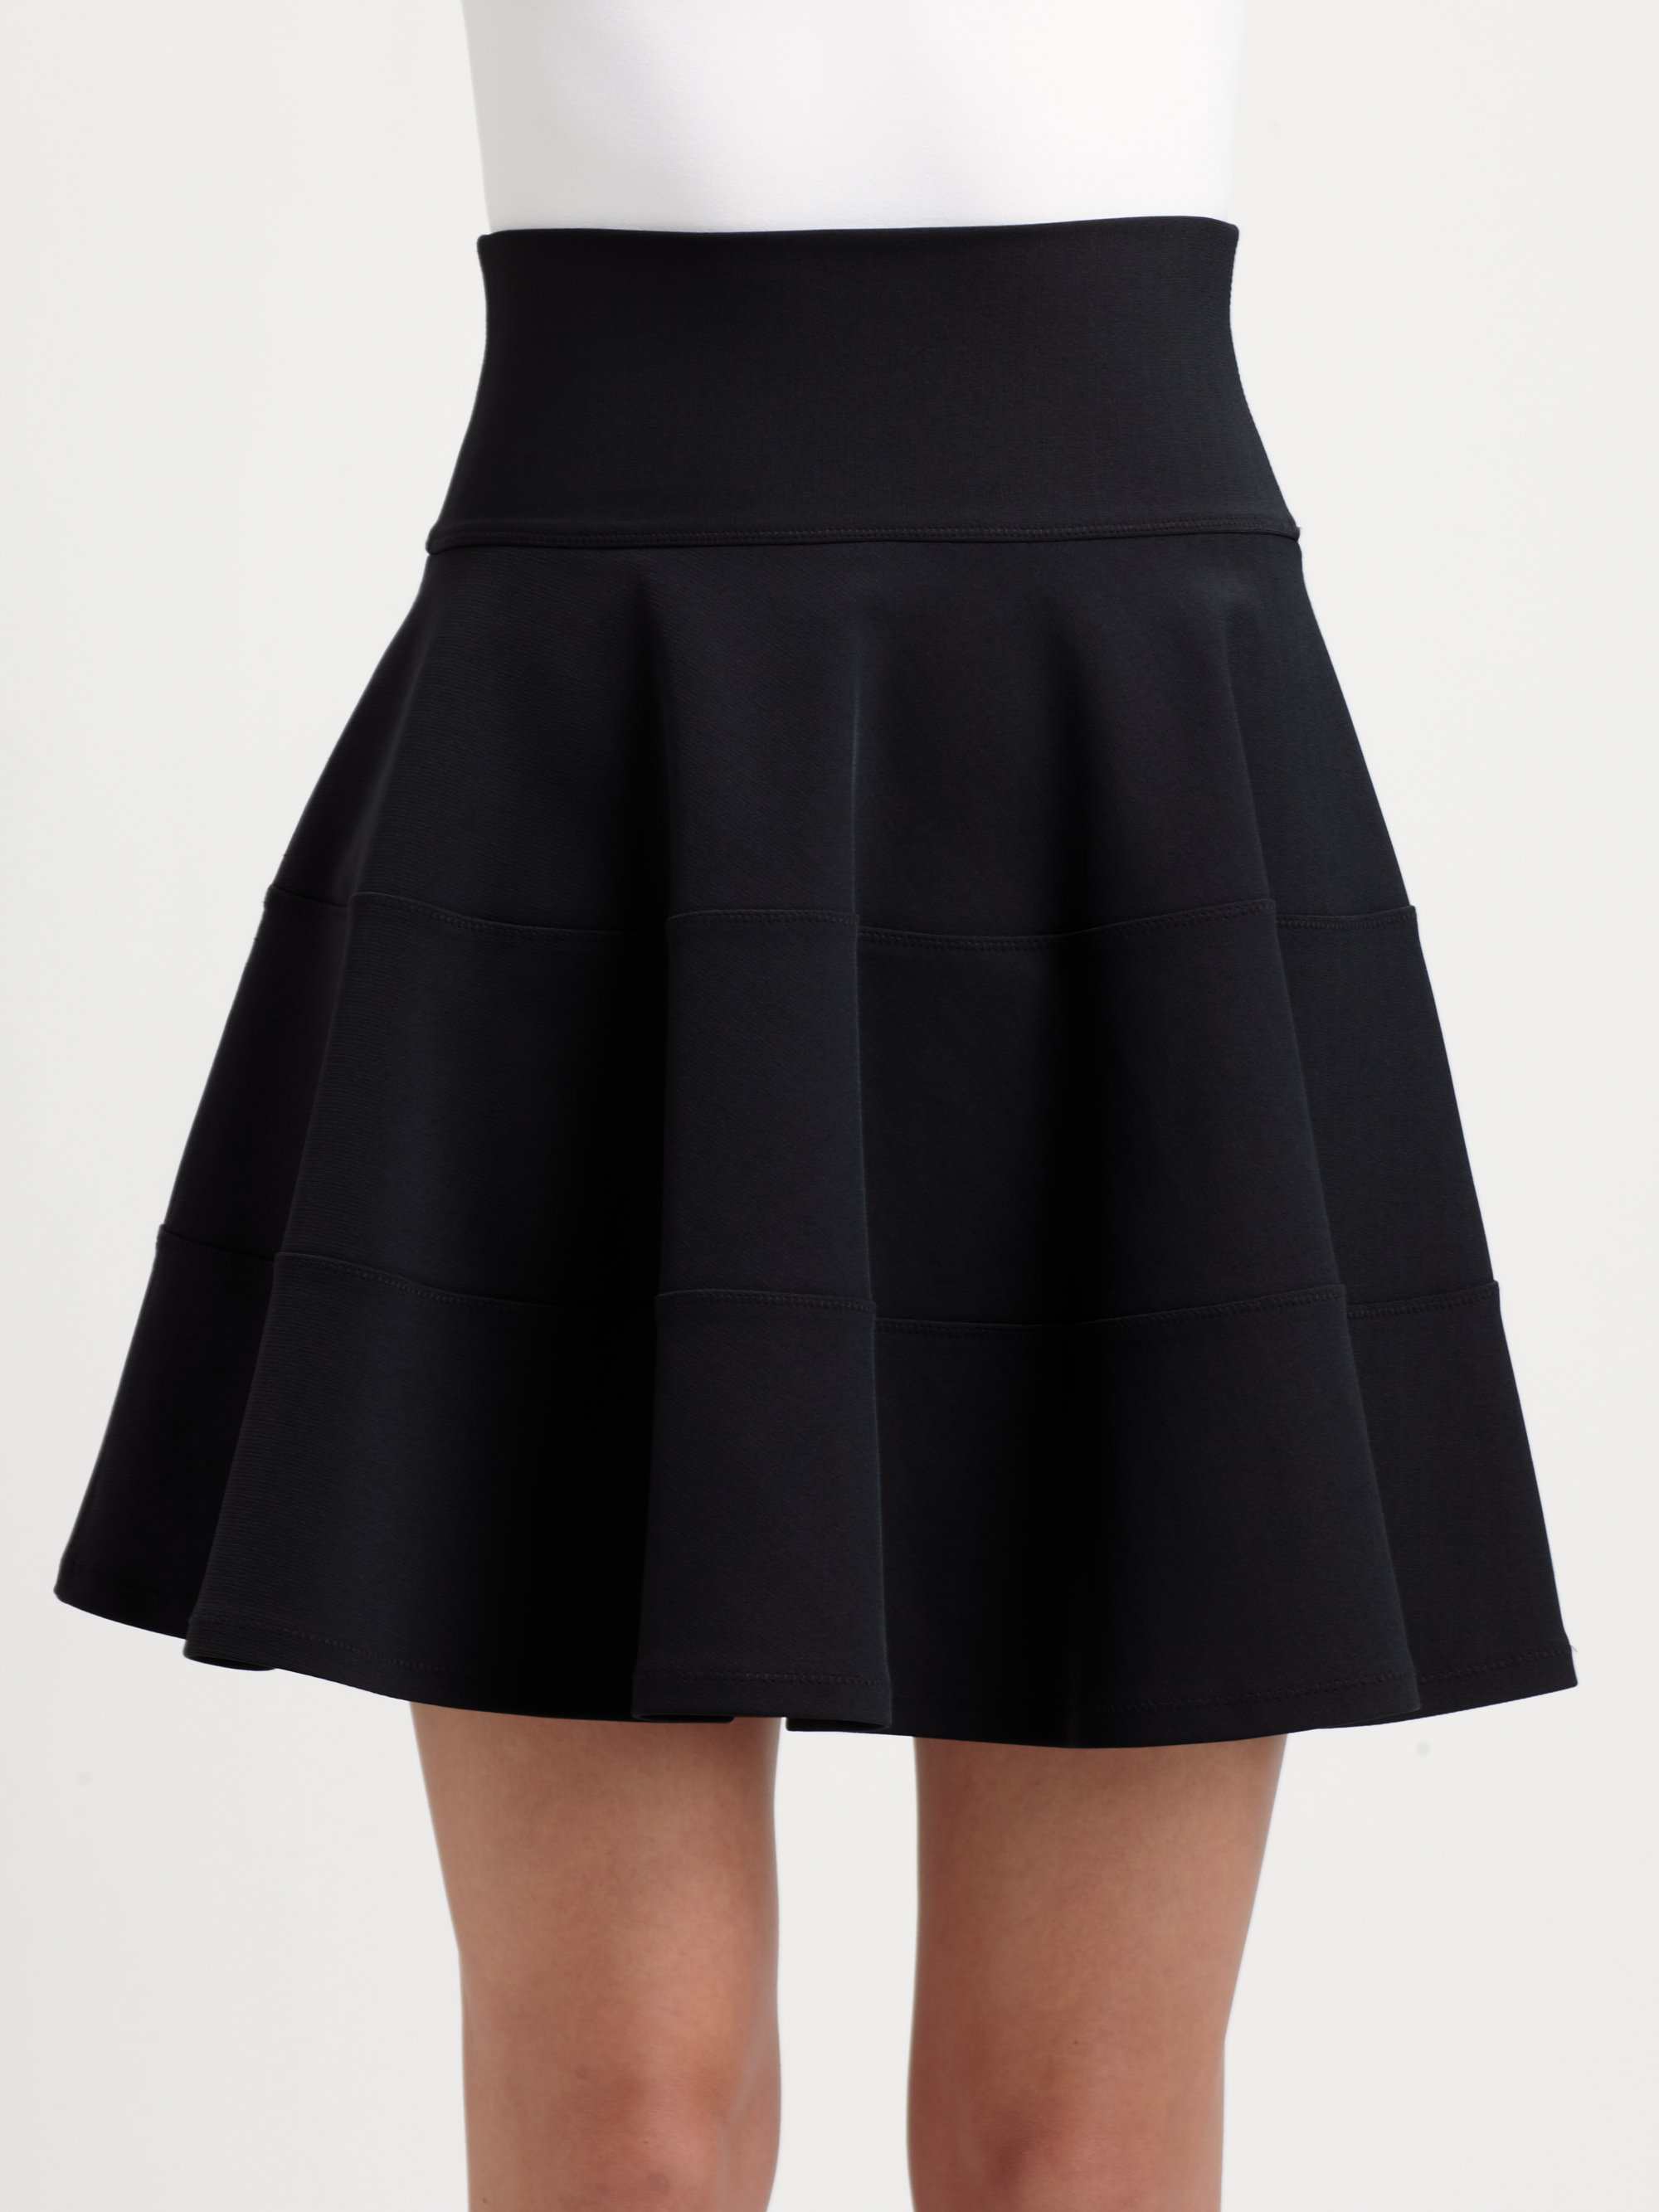 Find black flare skirt at ShopStyle. Shop the latest collection of black flare skirt from the most popular stores - all in one place. Skip to Content Lauren Ralph Lauren Black Flared Skirt Dresses Black Flare Skirt + Save this search Showing black flare skirt.